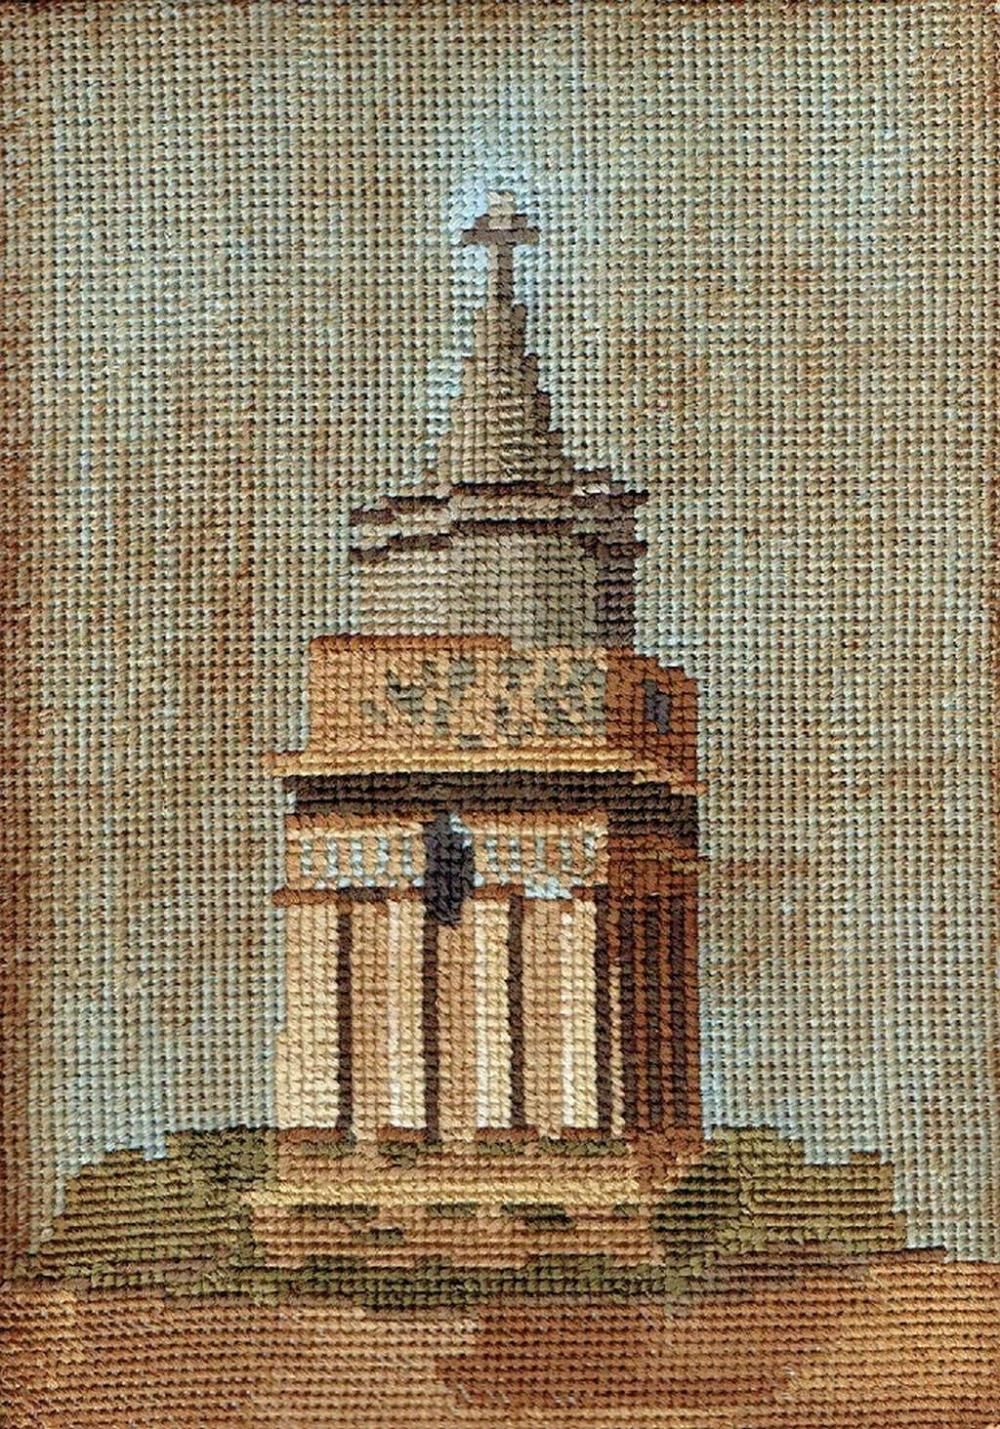 Bezalel. Tomb of Absalom. Antique embroidery, laid on panel, size: 24 x 17 cm.